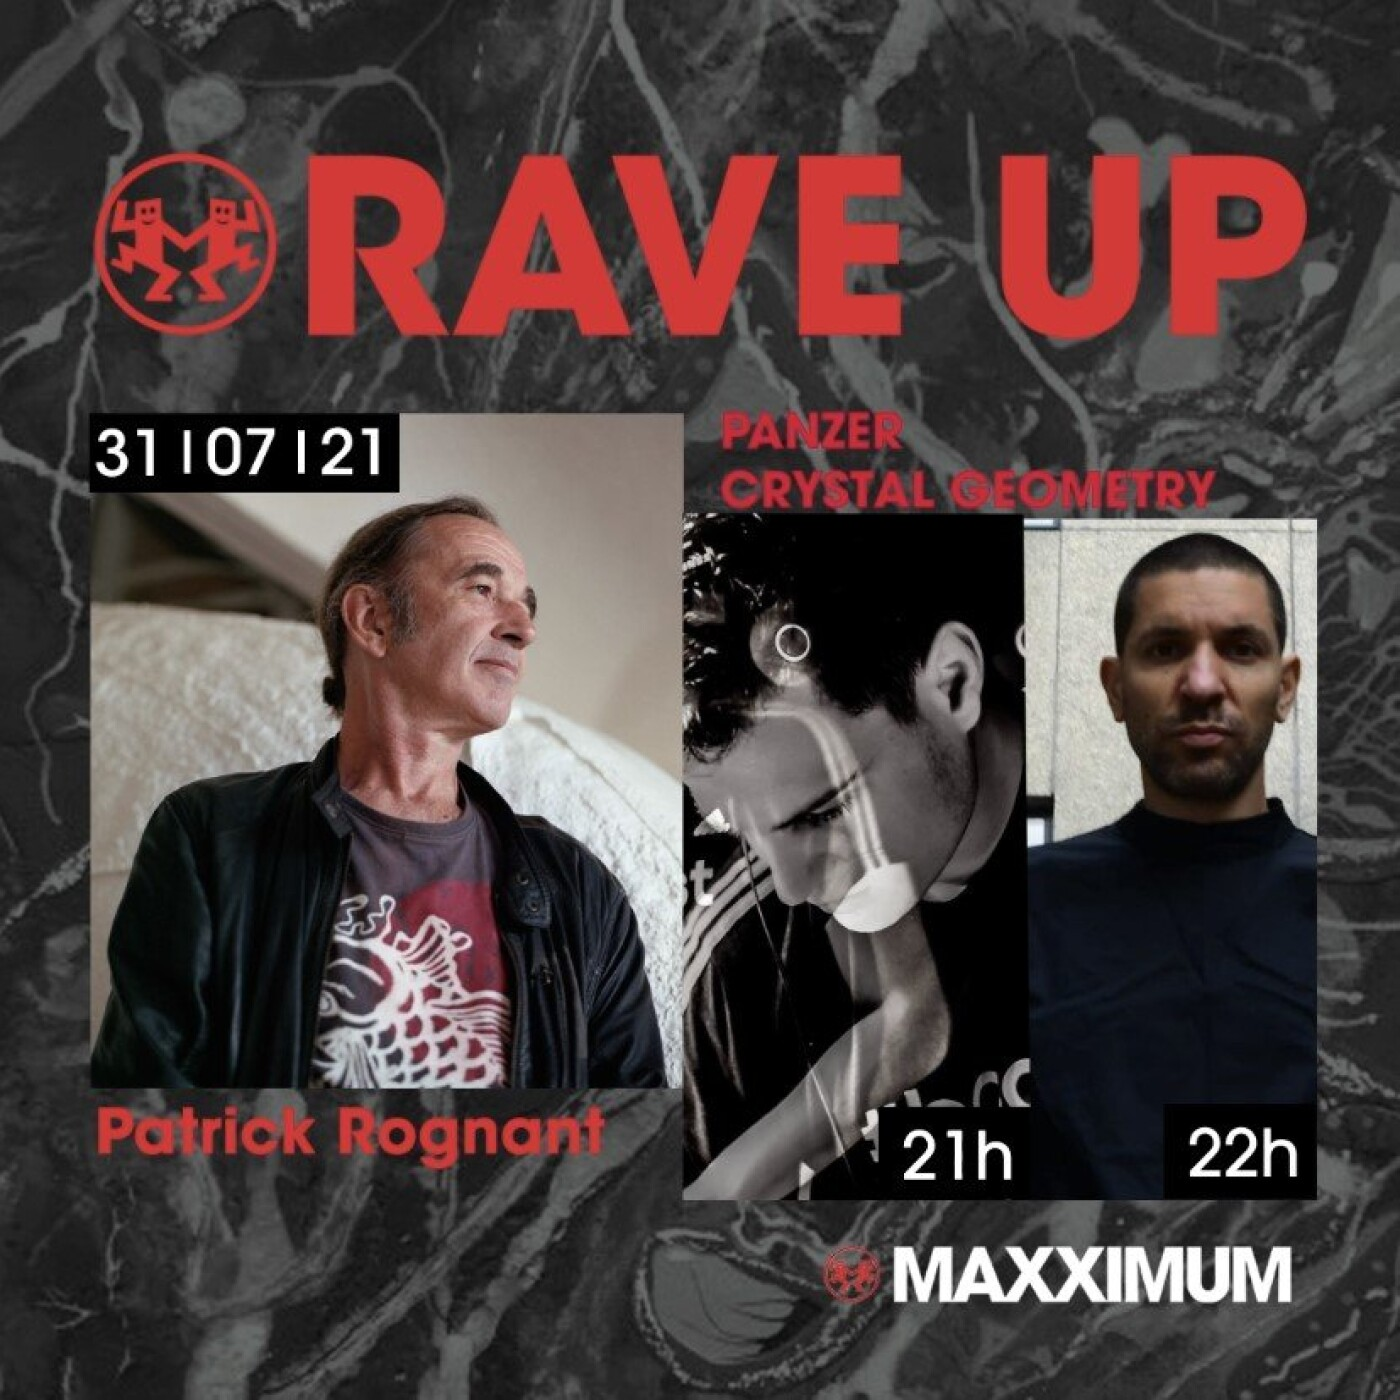 RAVE UP : PANZER & CRYSTAL GEOMETRY